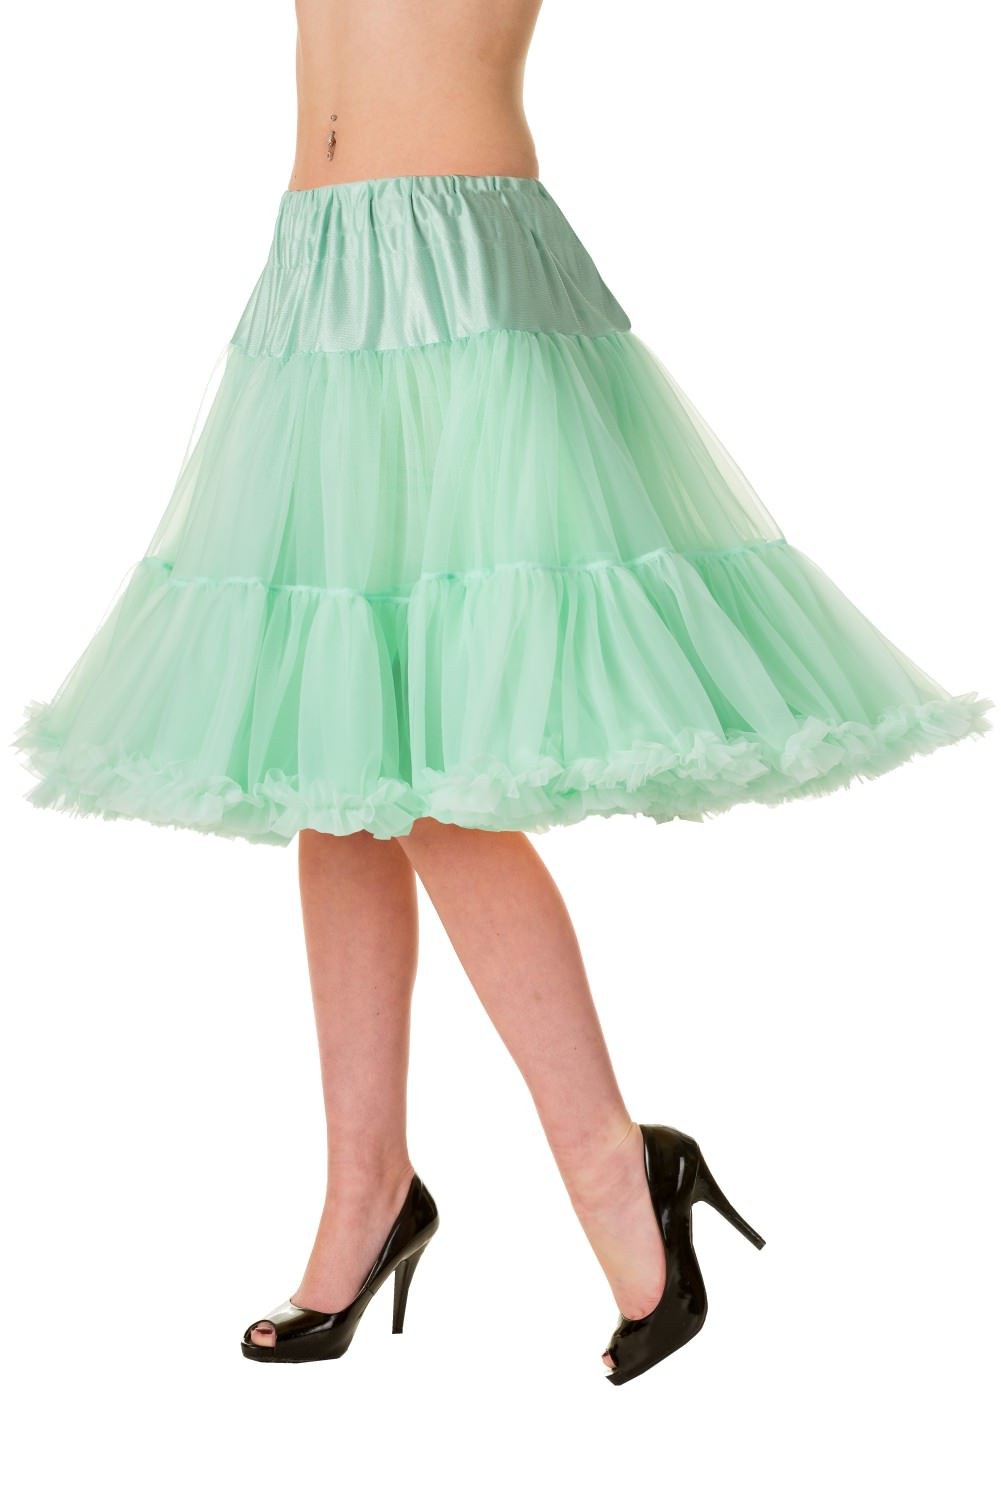 "Banned Walkabout 50s Petticoat - 20"" - Bohemian Finds"